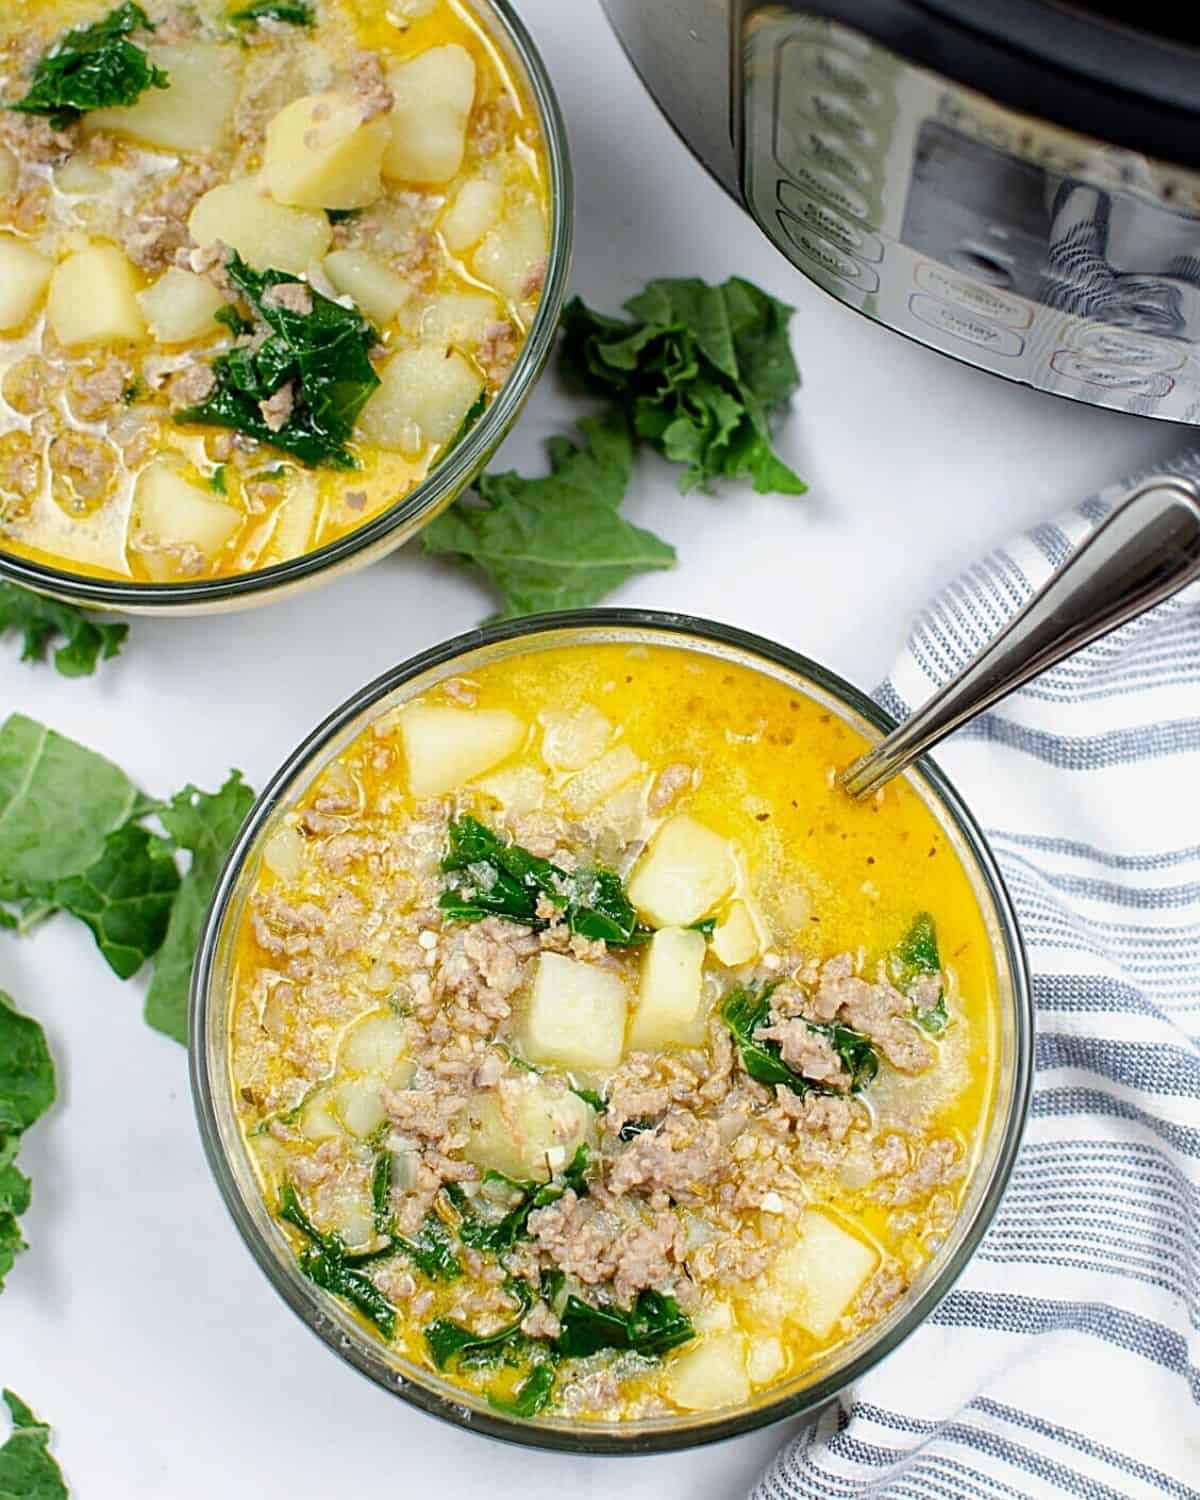 Two bowls of soup loaded with potatoes, kale, and ground sausage next to an Instant Pot